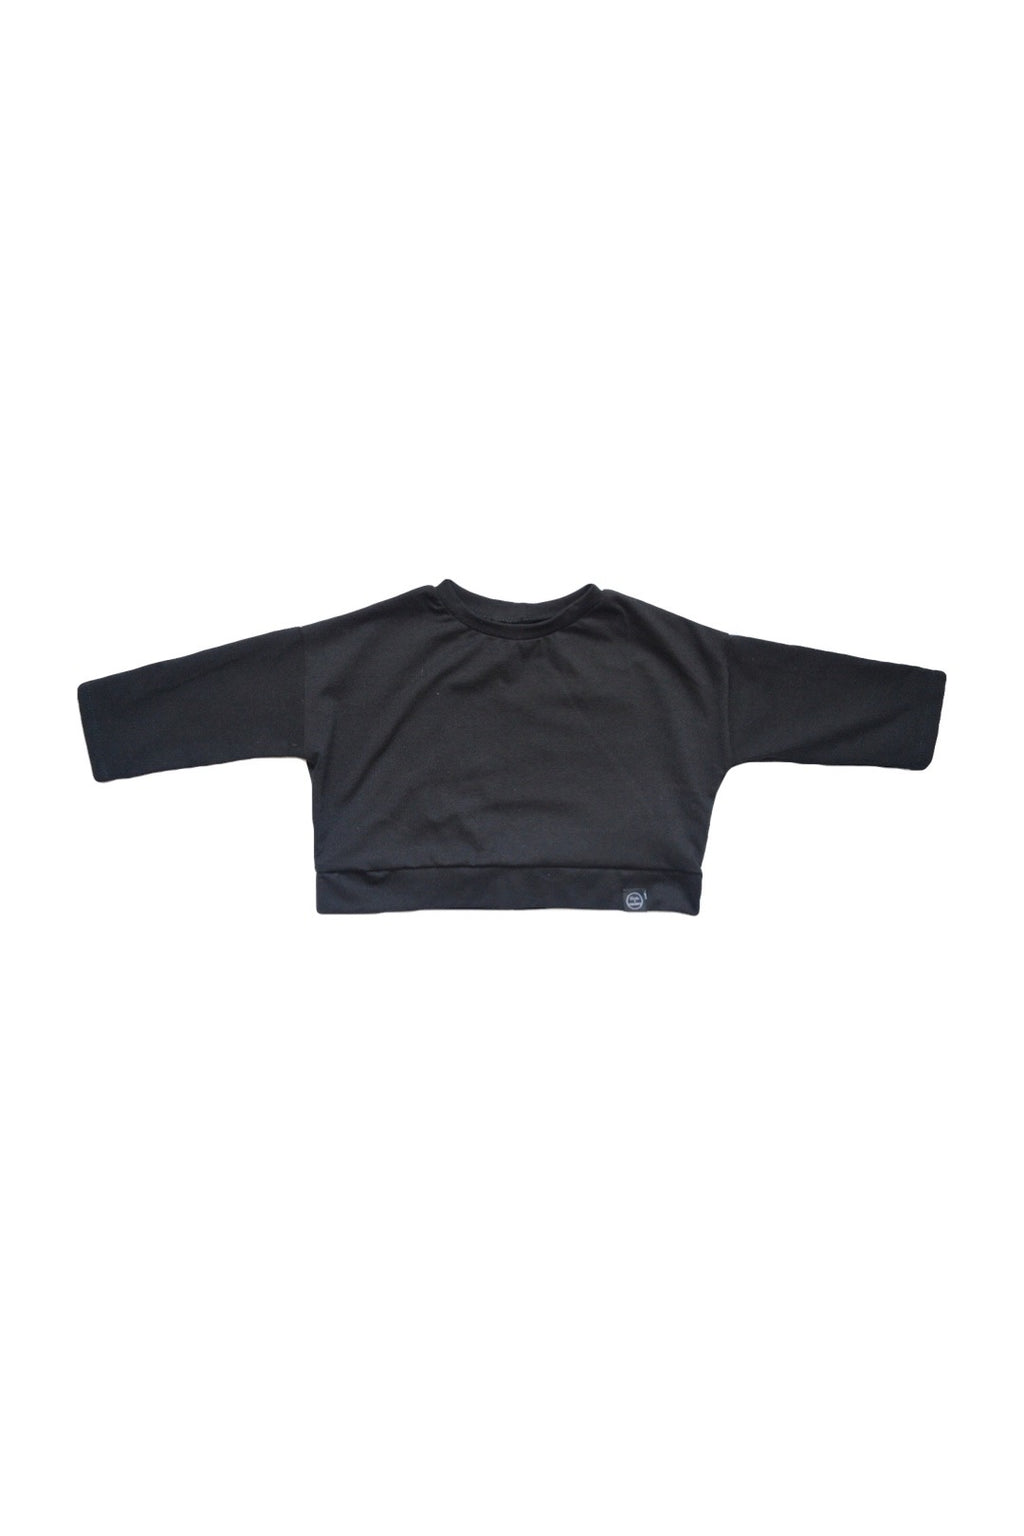 Black Midi Crop Sweatshirt